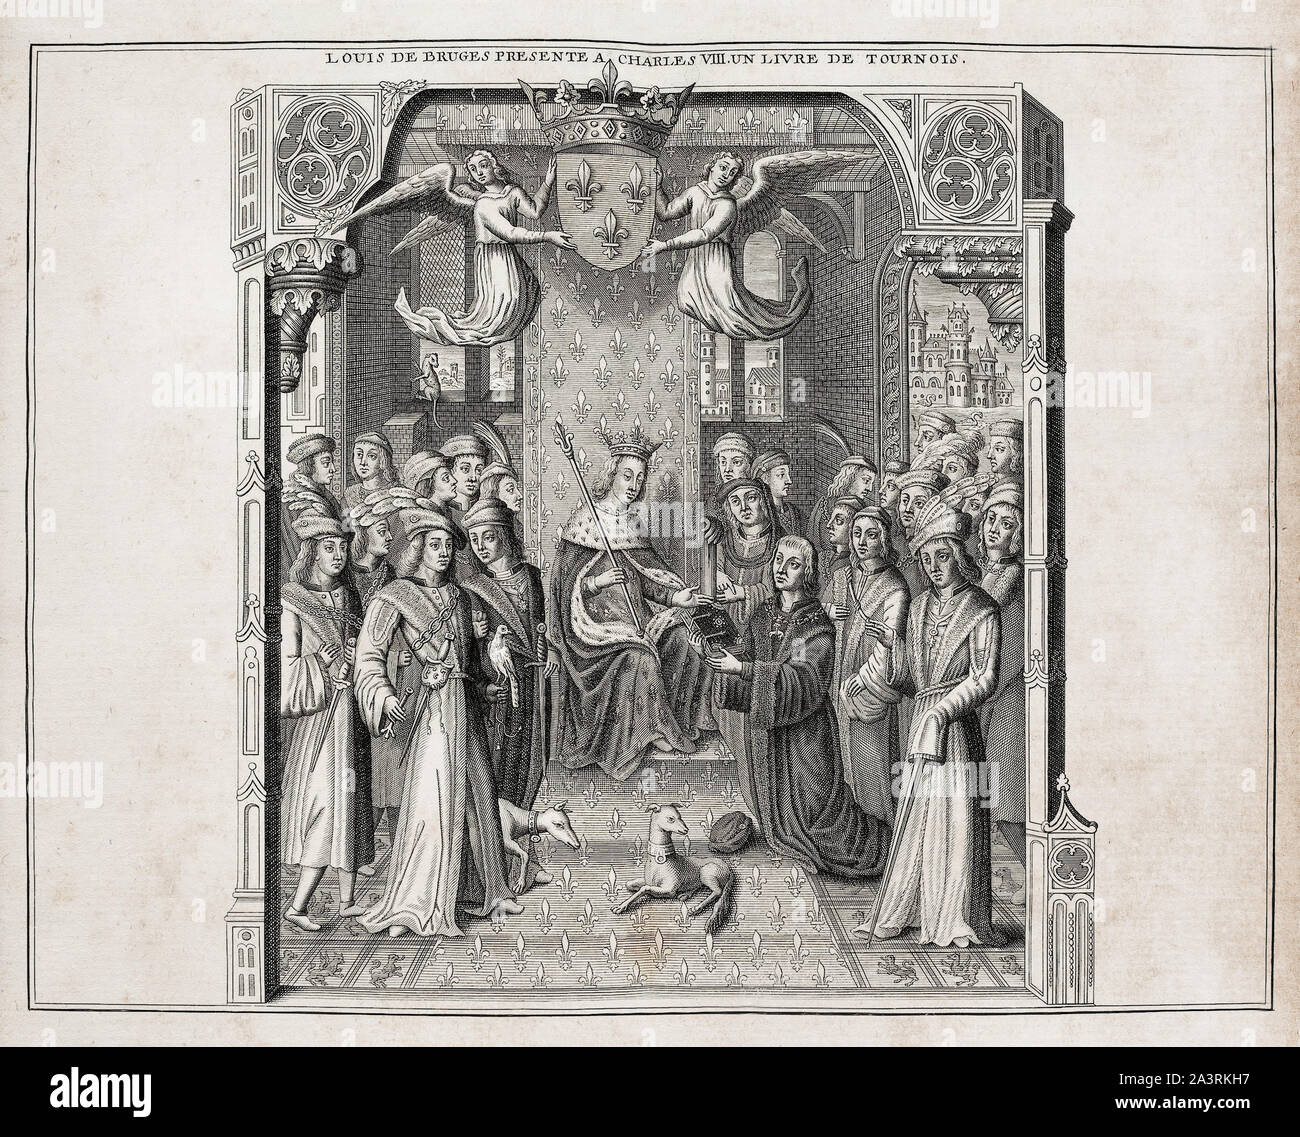 Louis de Bruges presents Charles VIII a book about  tournaments. Louis de Bruges, Lord of Gruuthuse, Prince of Steenhuijs, Earl of Winchester (1427 – Stock Photo